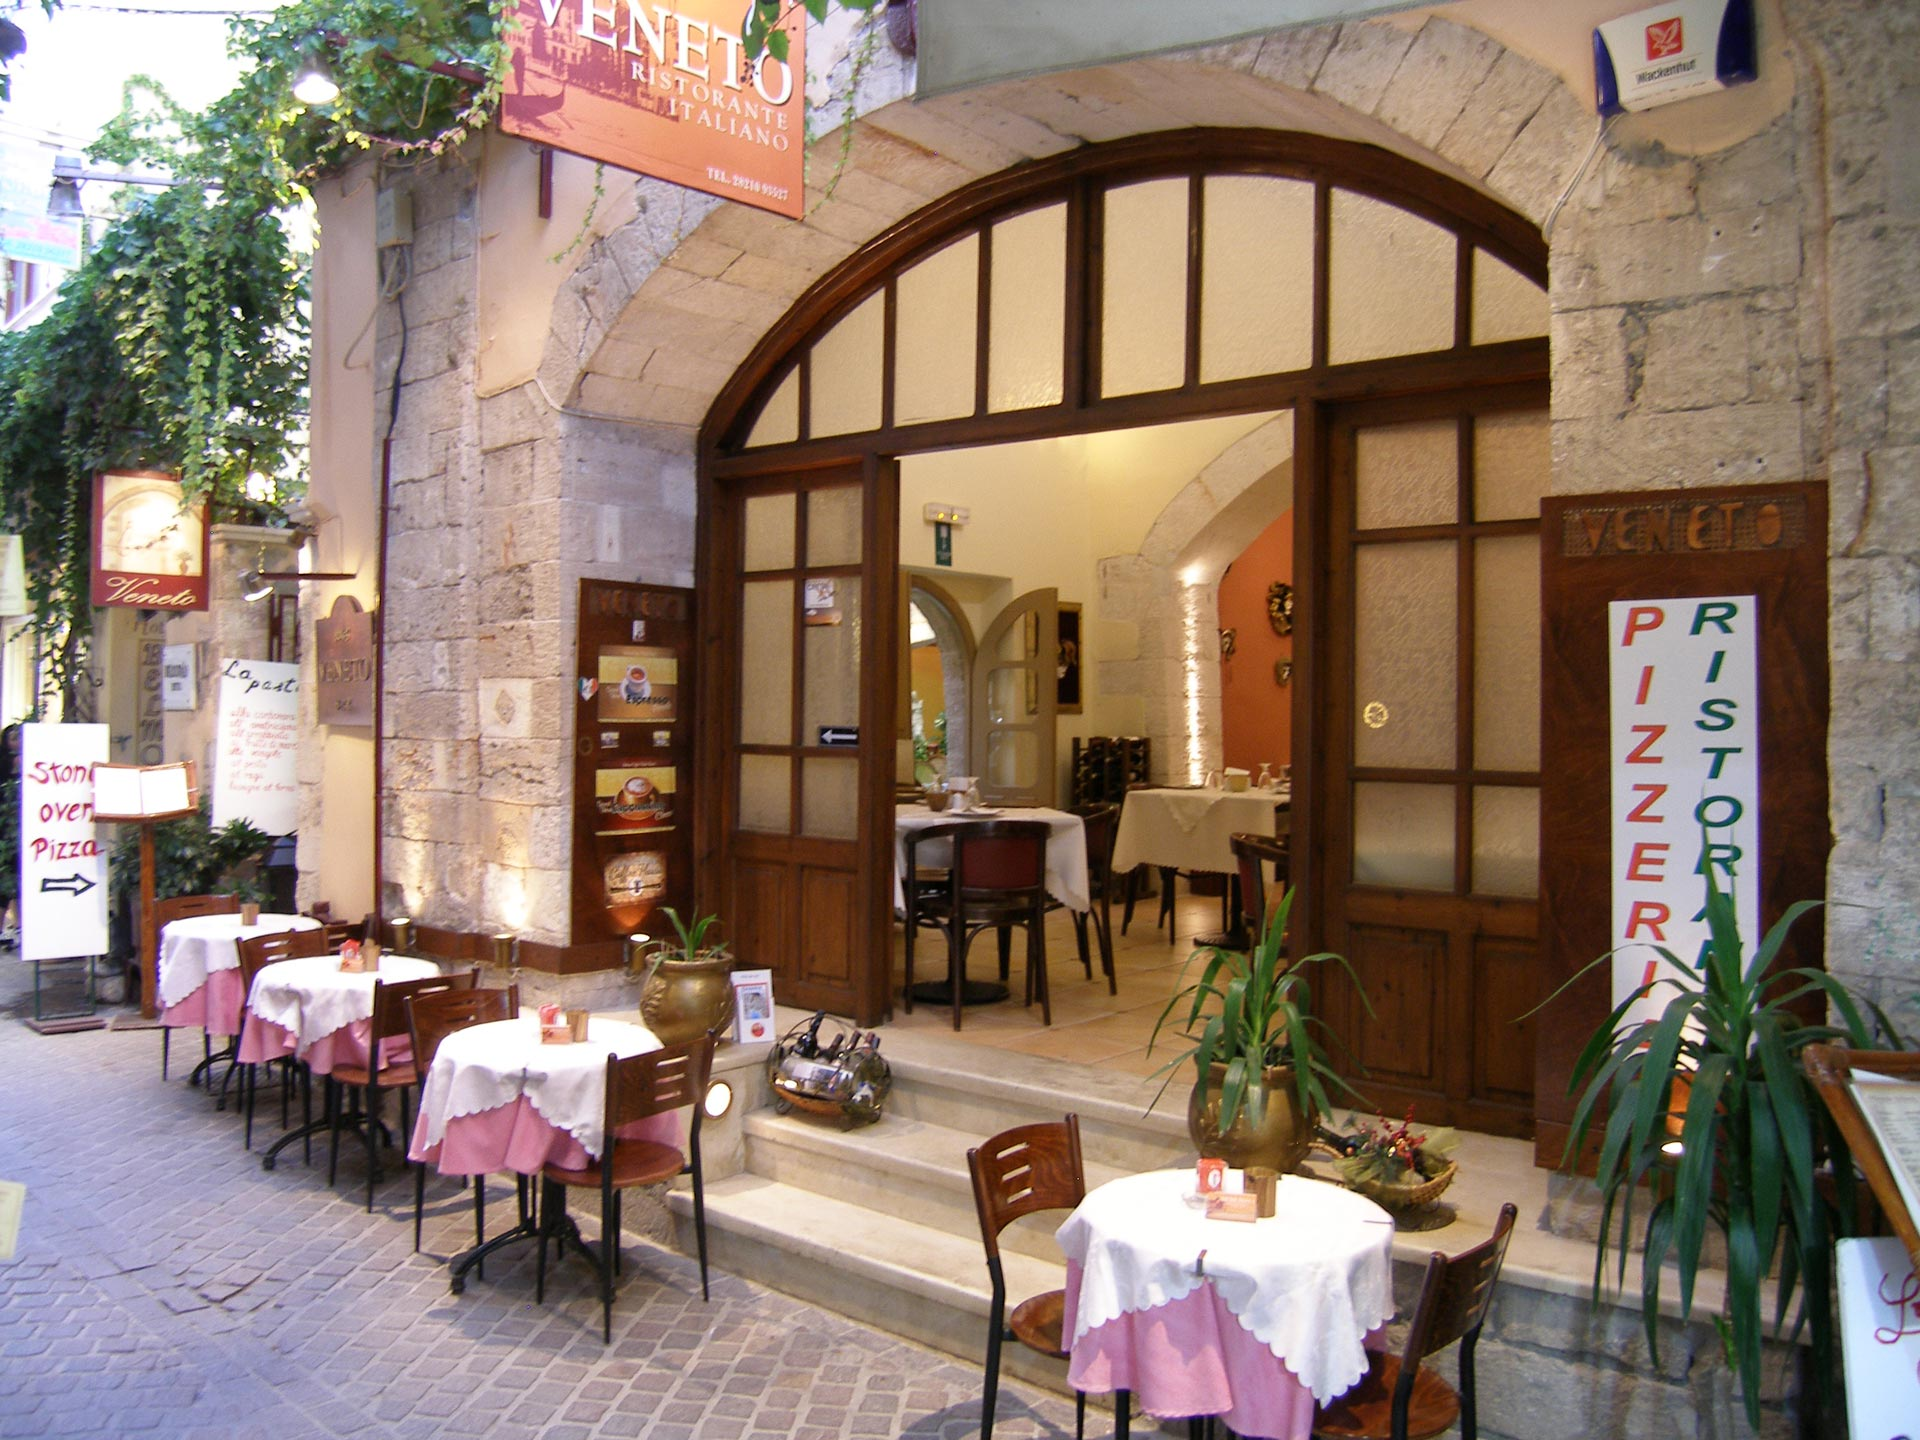 Veneto ristorante italiano Restaurants in Chania Crete Greece